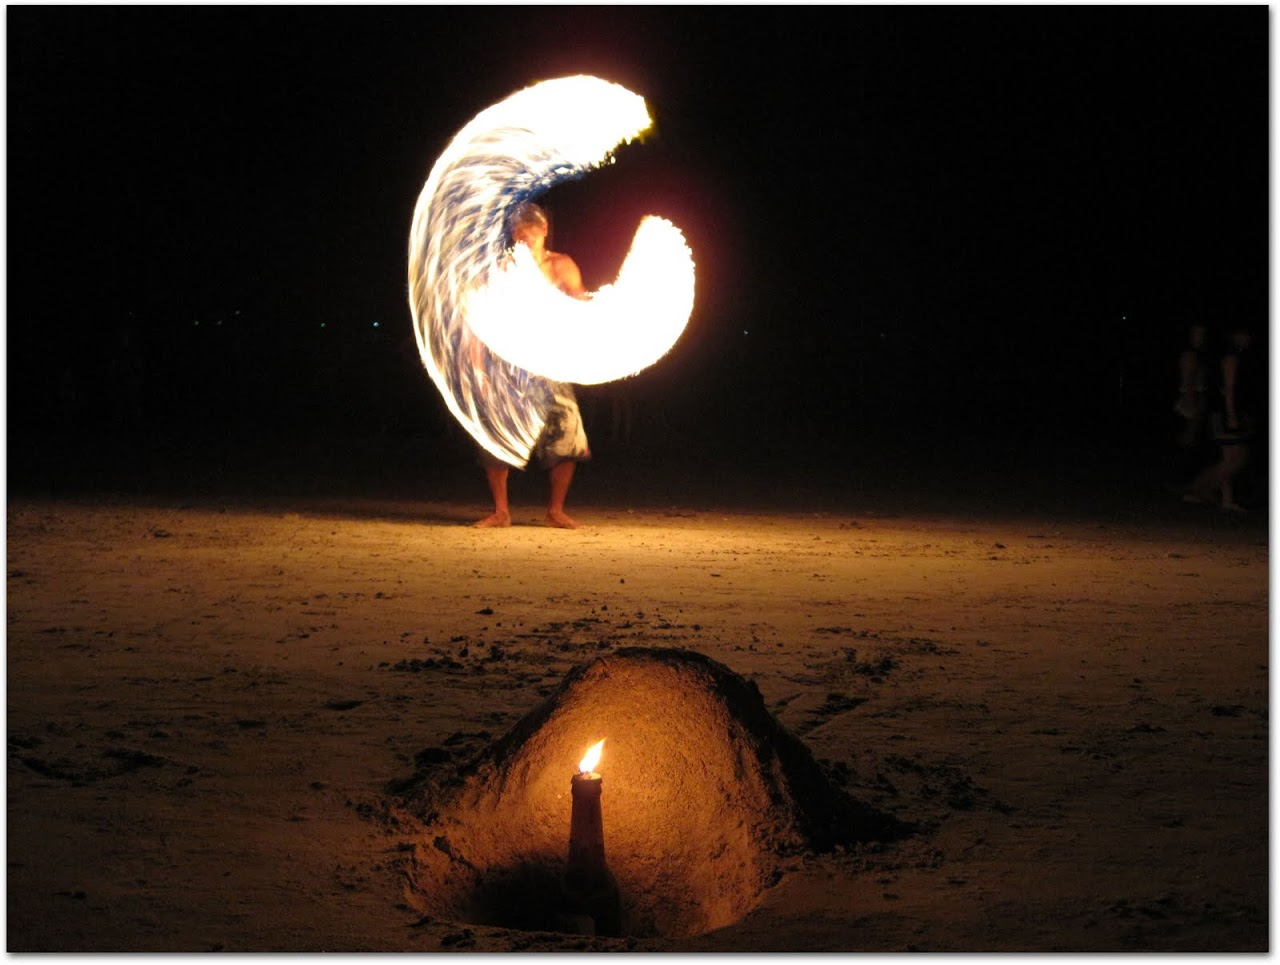 Fire dancer in Koh Tao